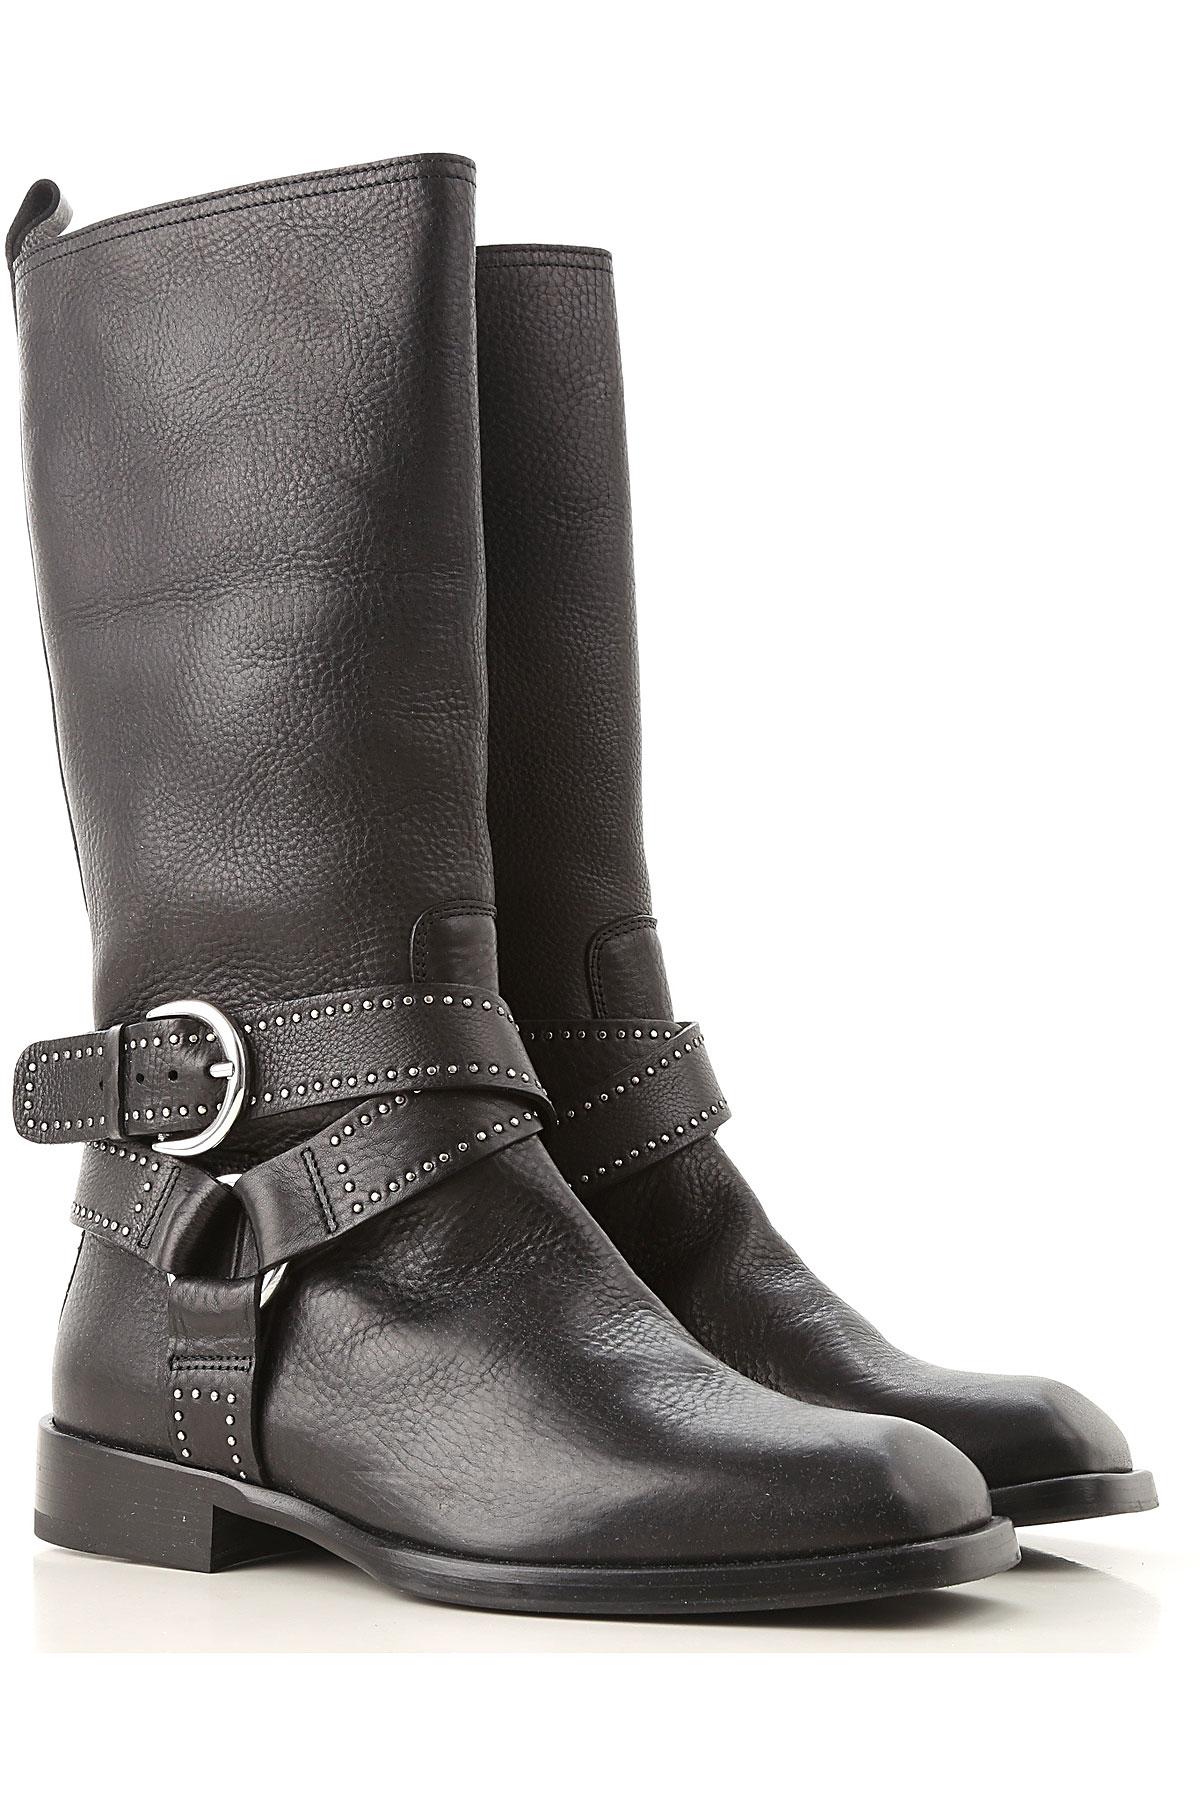 Image of Dondup Boots for Women, Booties, Black, Leather, 2017, 10 6 7 8